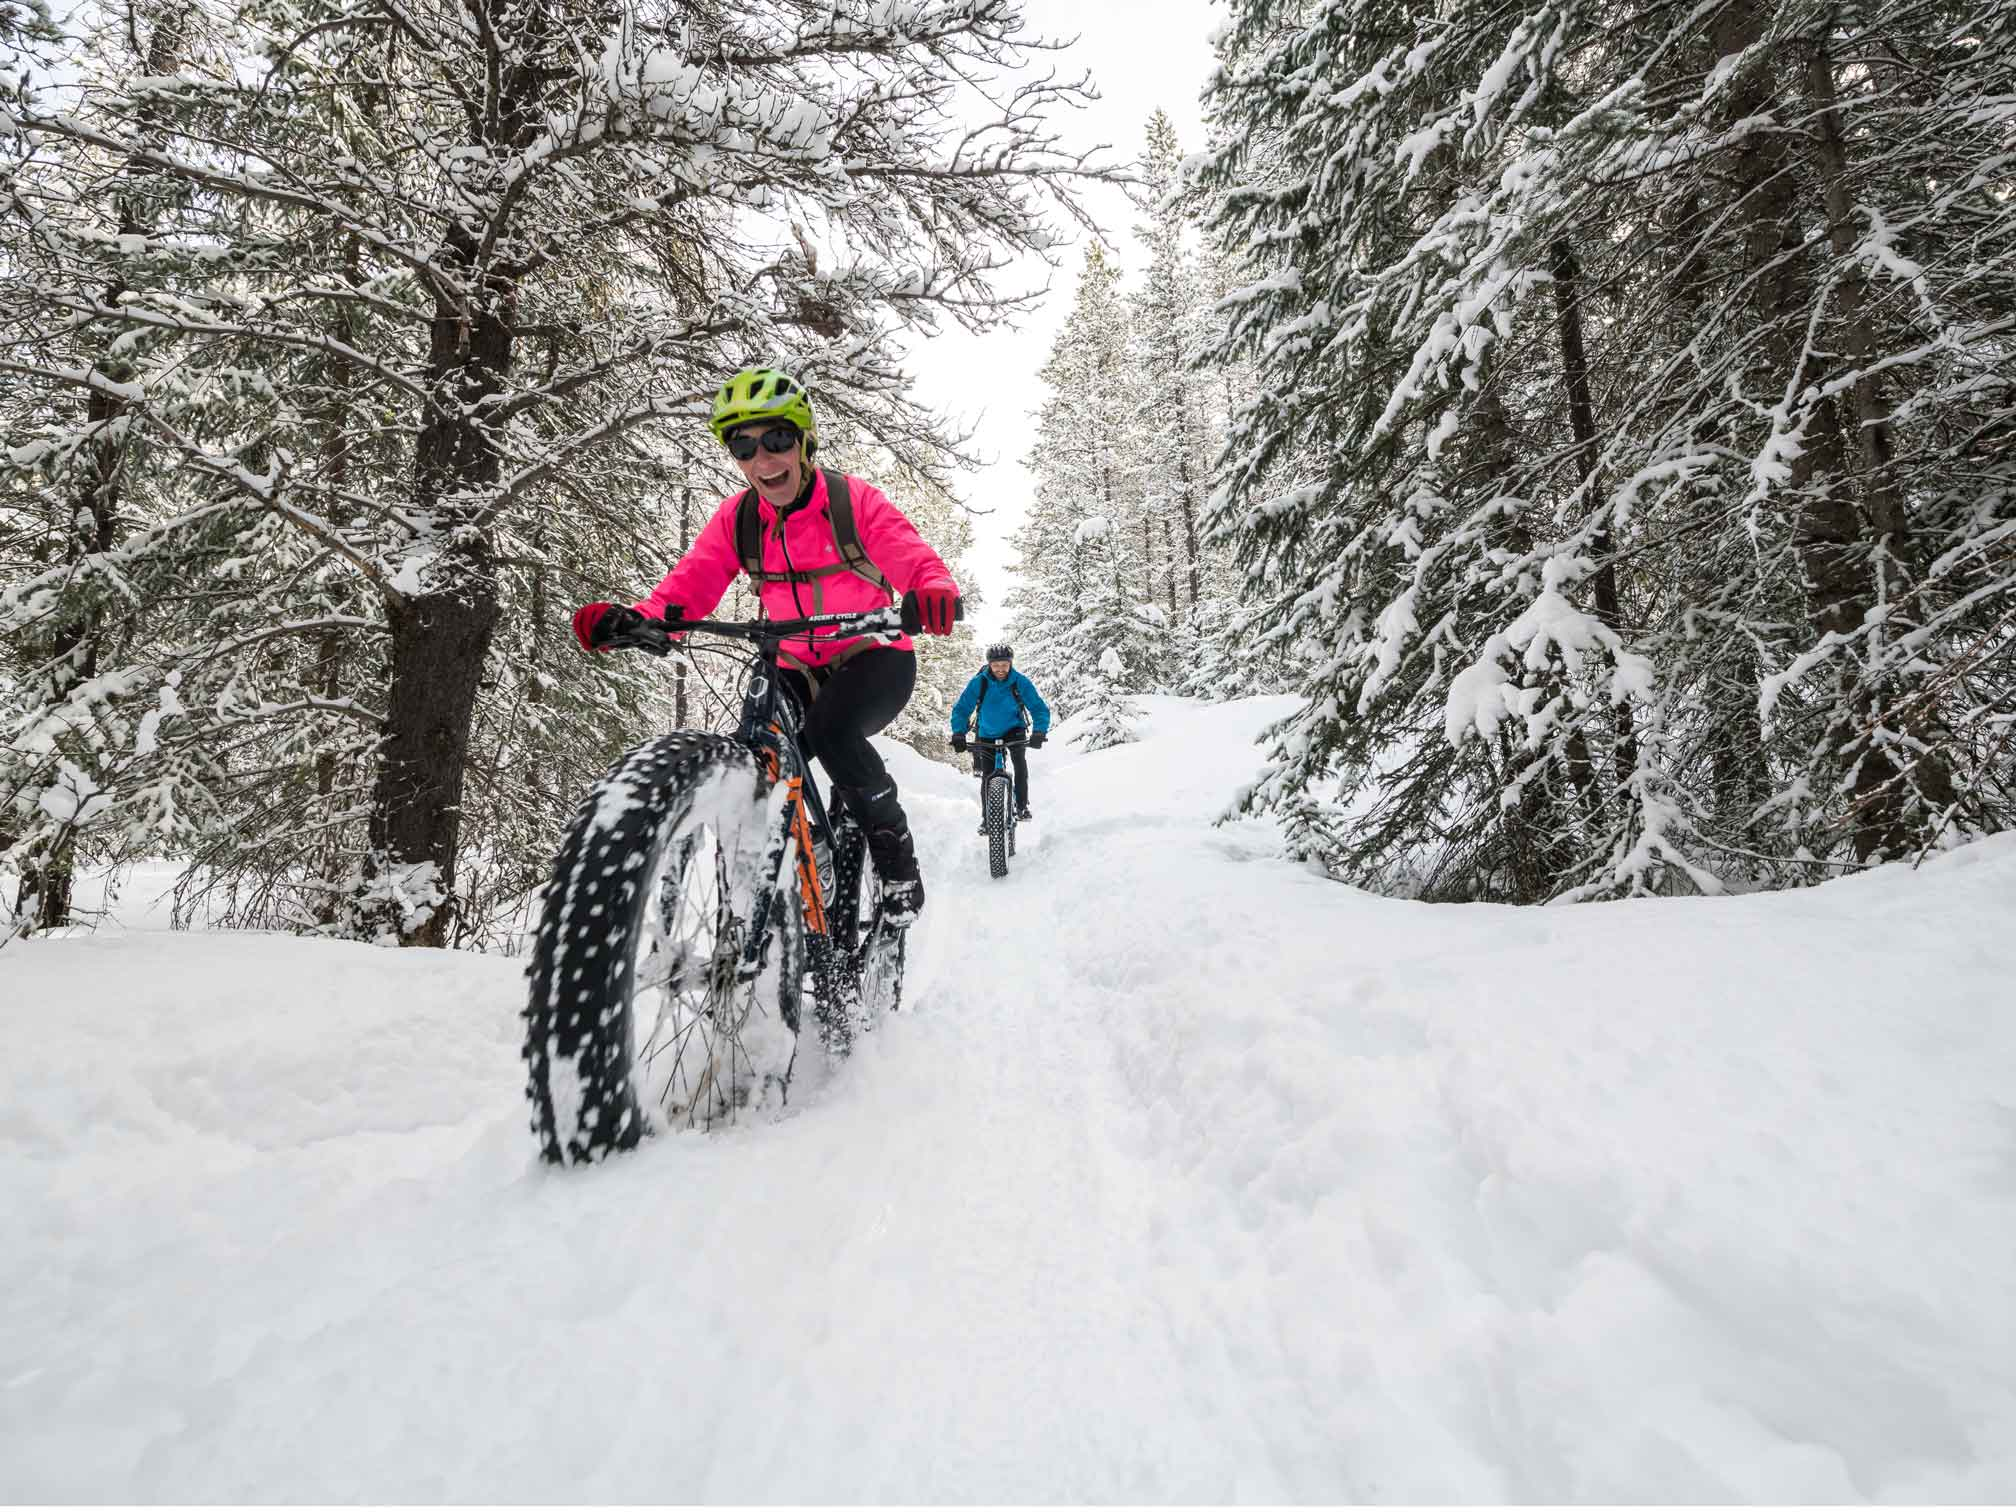 Fatbiking is a new and exciting way to stay outside in winter. Photo by Bryce Meyer